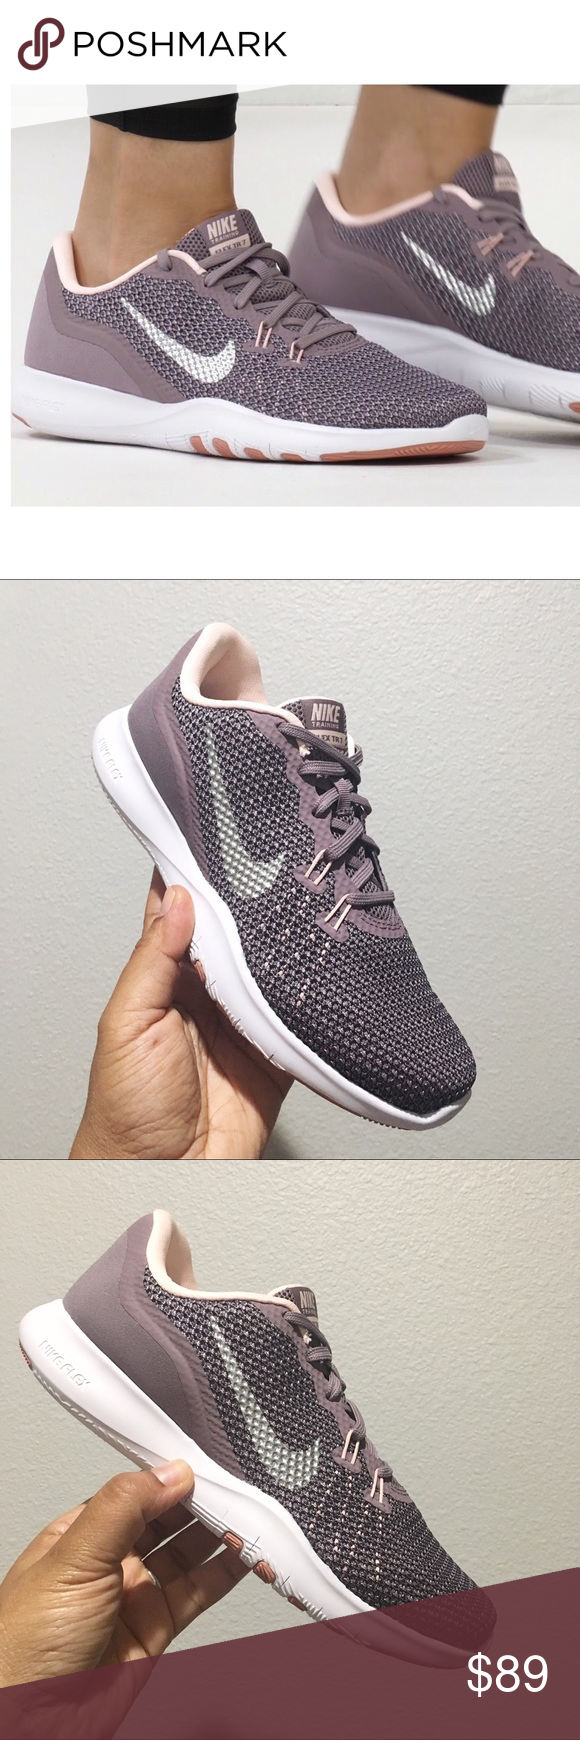 237f19fa41c43 Nike Flex Trainer 7 Bionic Women s Shoes Size 7 Brand New in Box! 🙌🏽 - Women s  Nike Flex Trainer 7 Bionic Taupe Grey   Metallic Silver 917713 200 ...